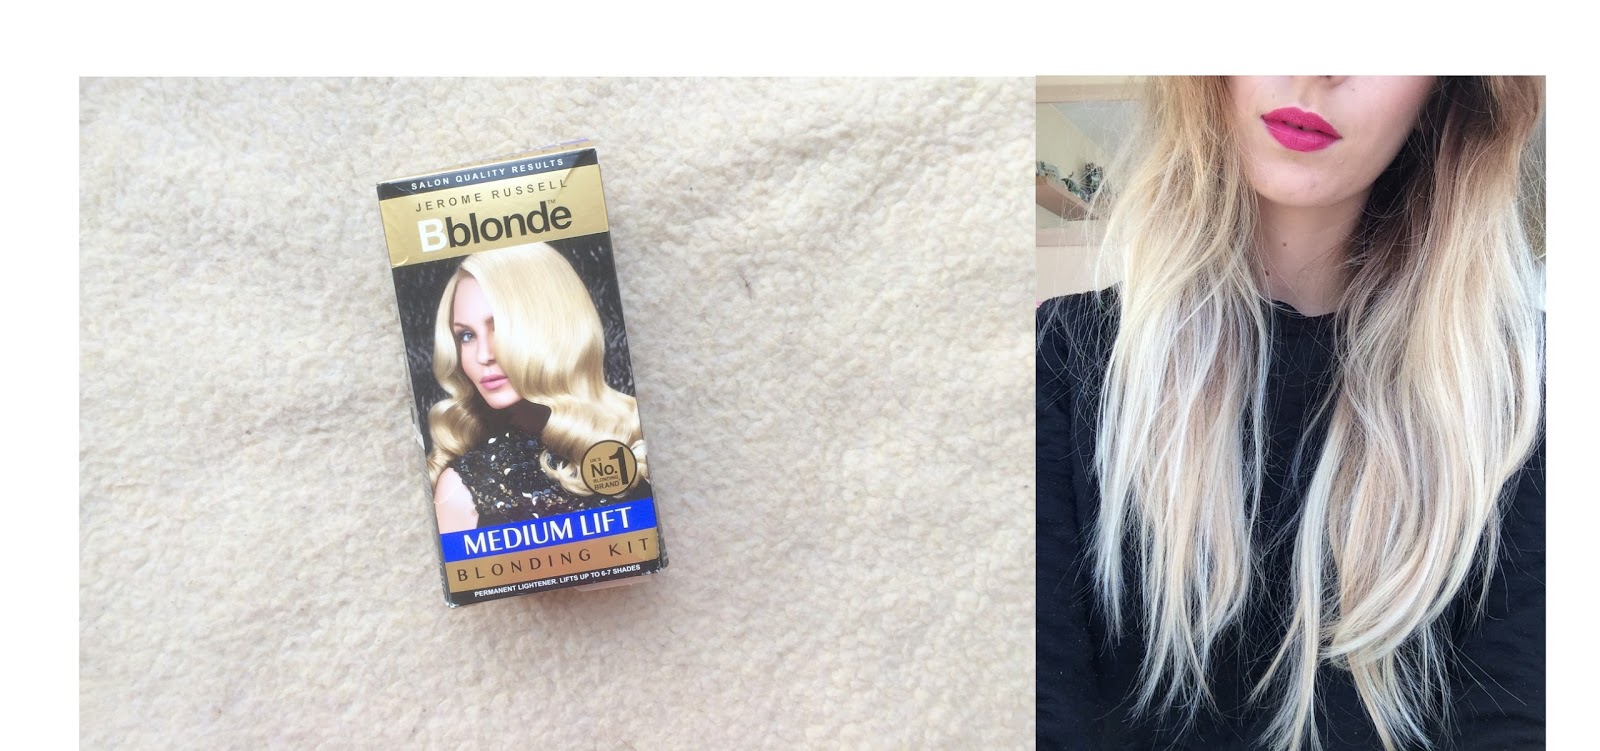 bblonde medium lift kit review